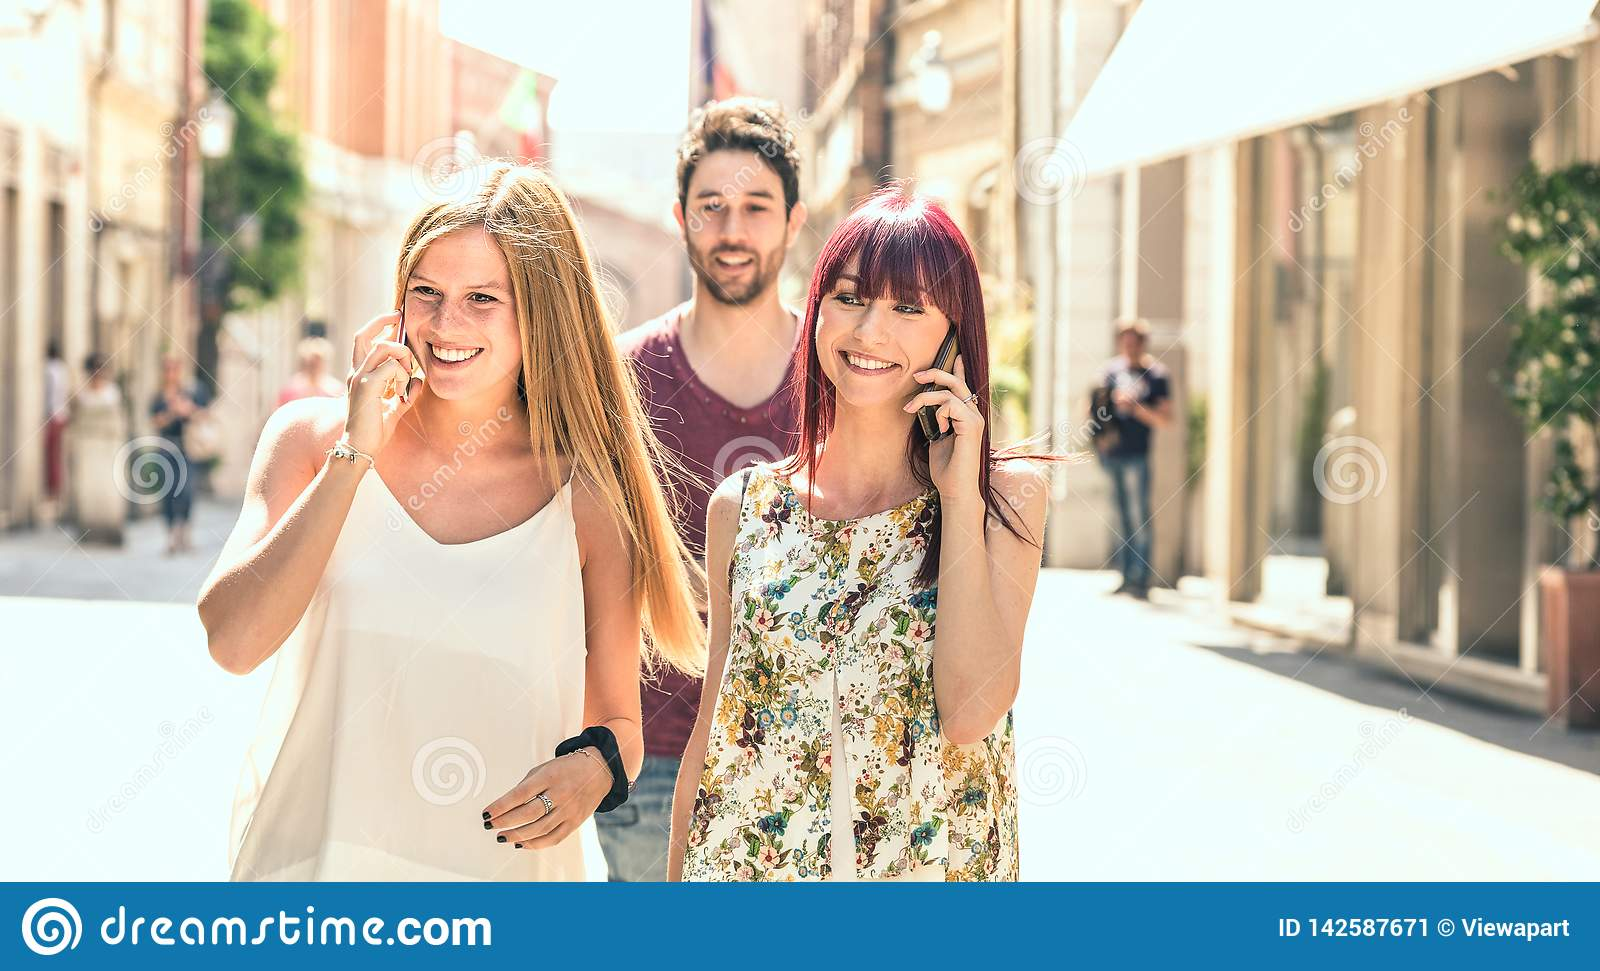 Young man following pretty women while having fun together on city street - Technology concept in everyday lifestyle